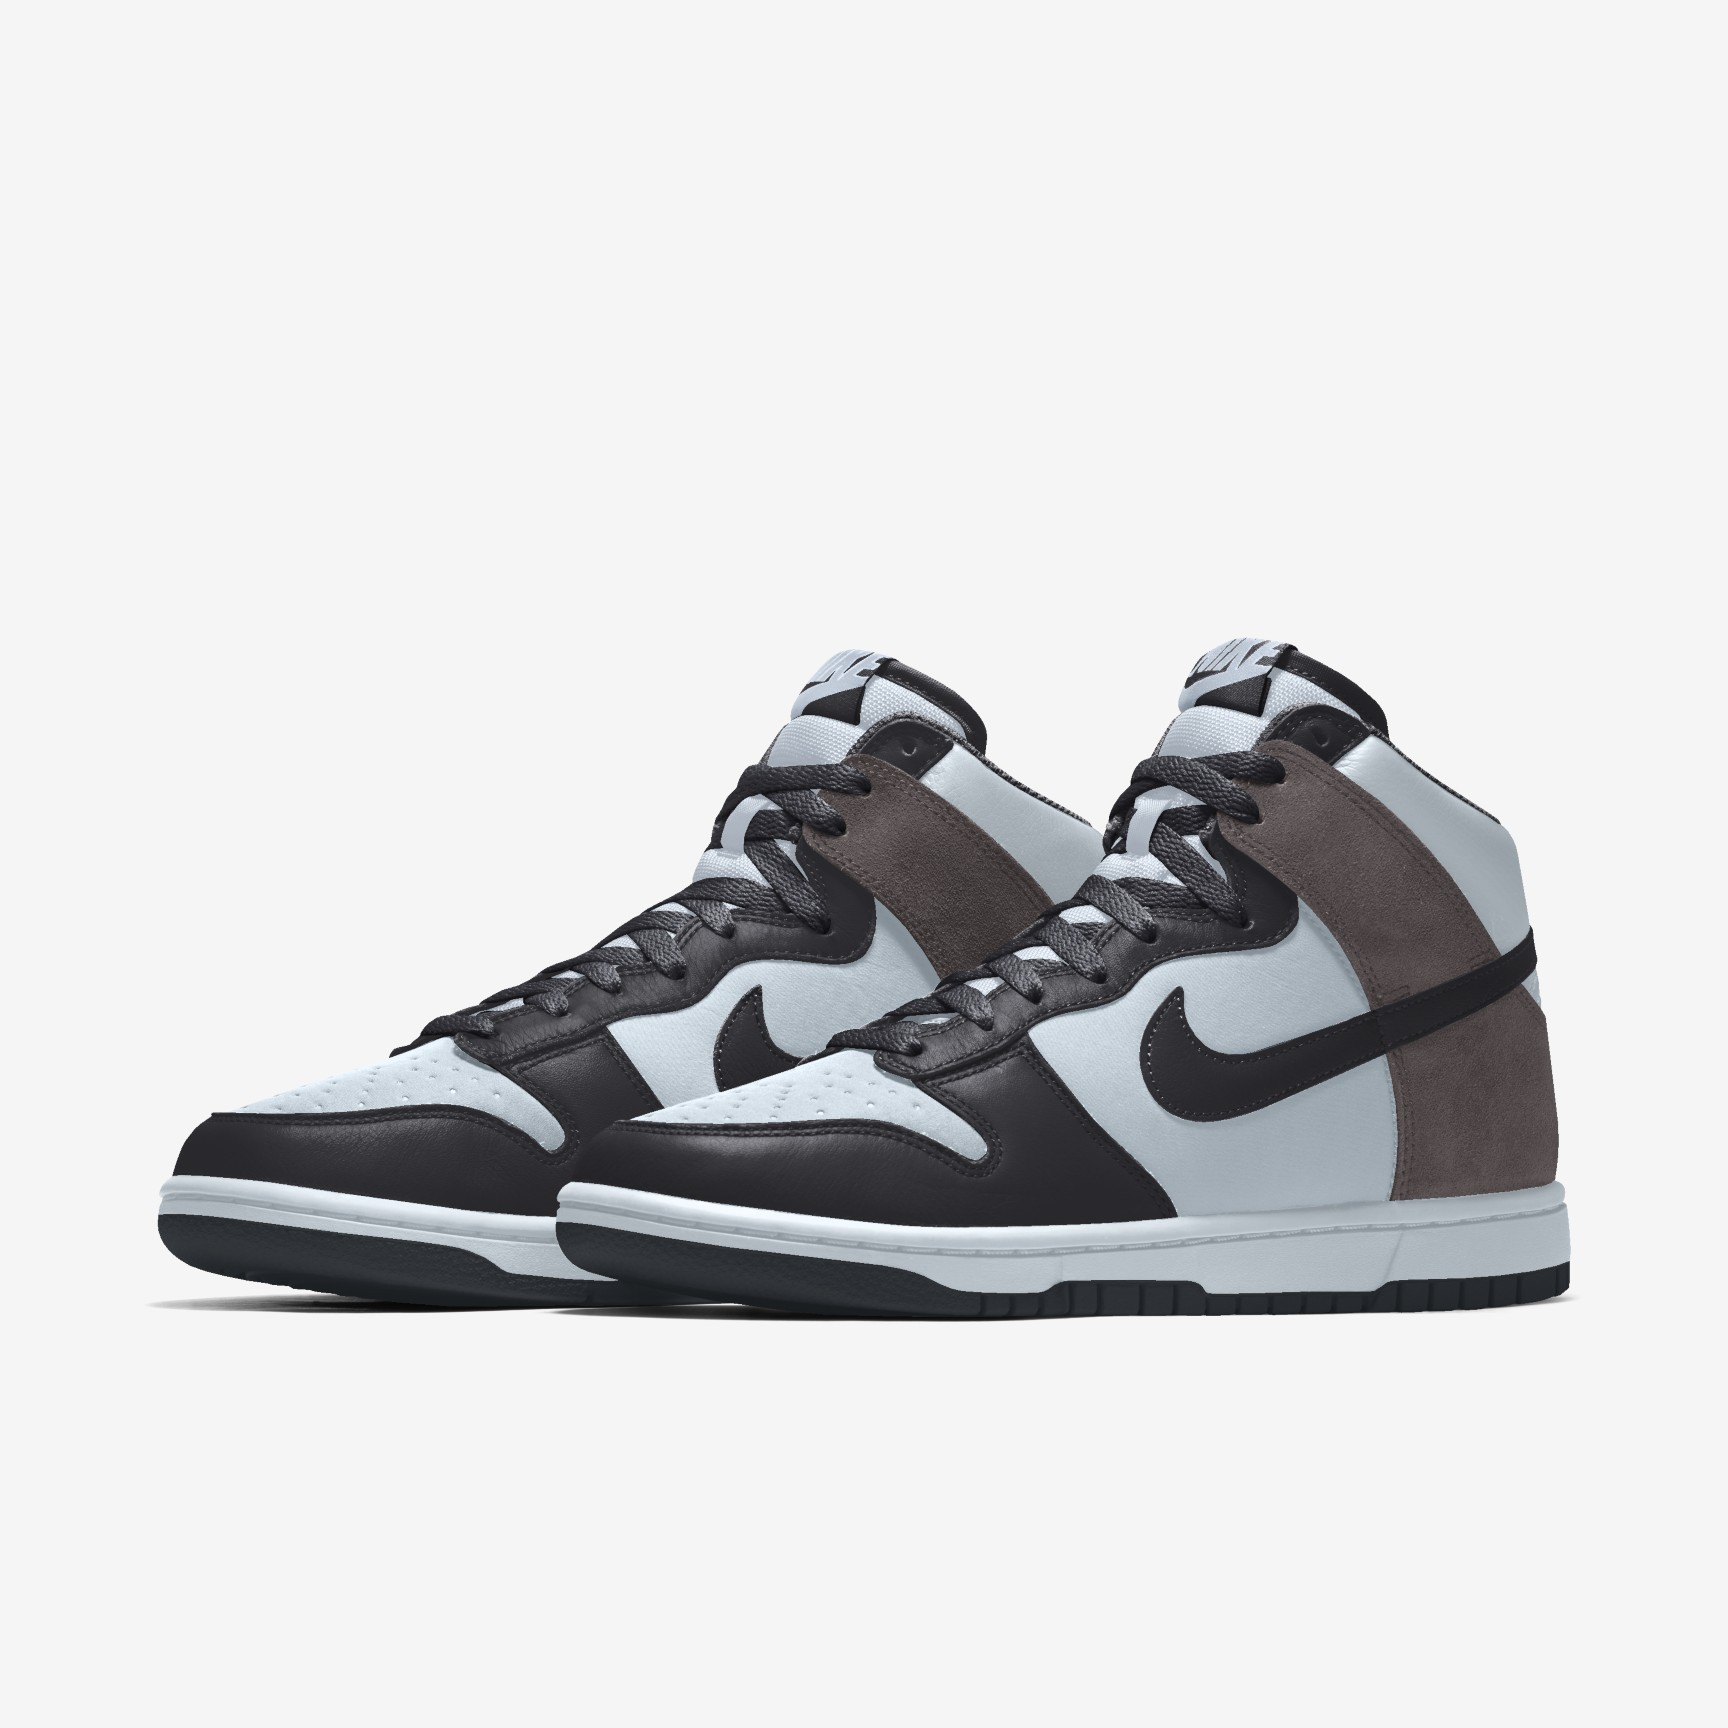 nike-dunk-high-by-you-dj7023-991-release-20210902-16nike-dunk-high-by-you-dj7023-991-release-20210902